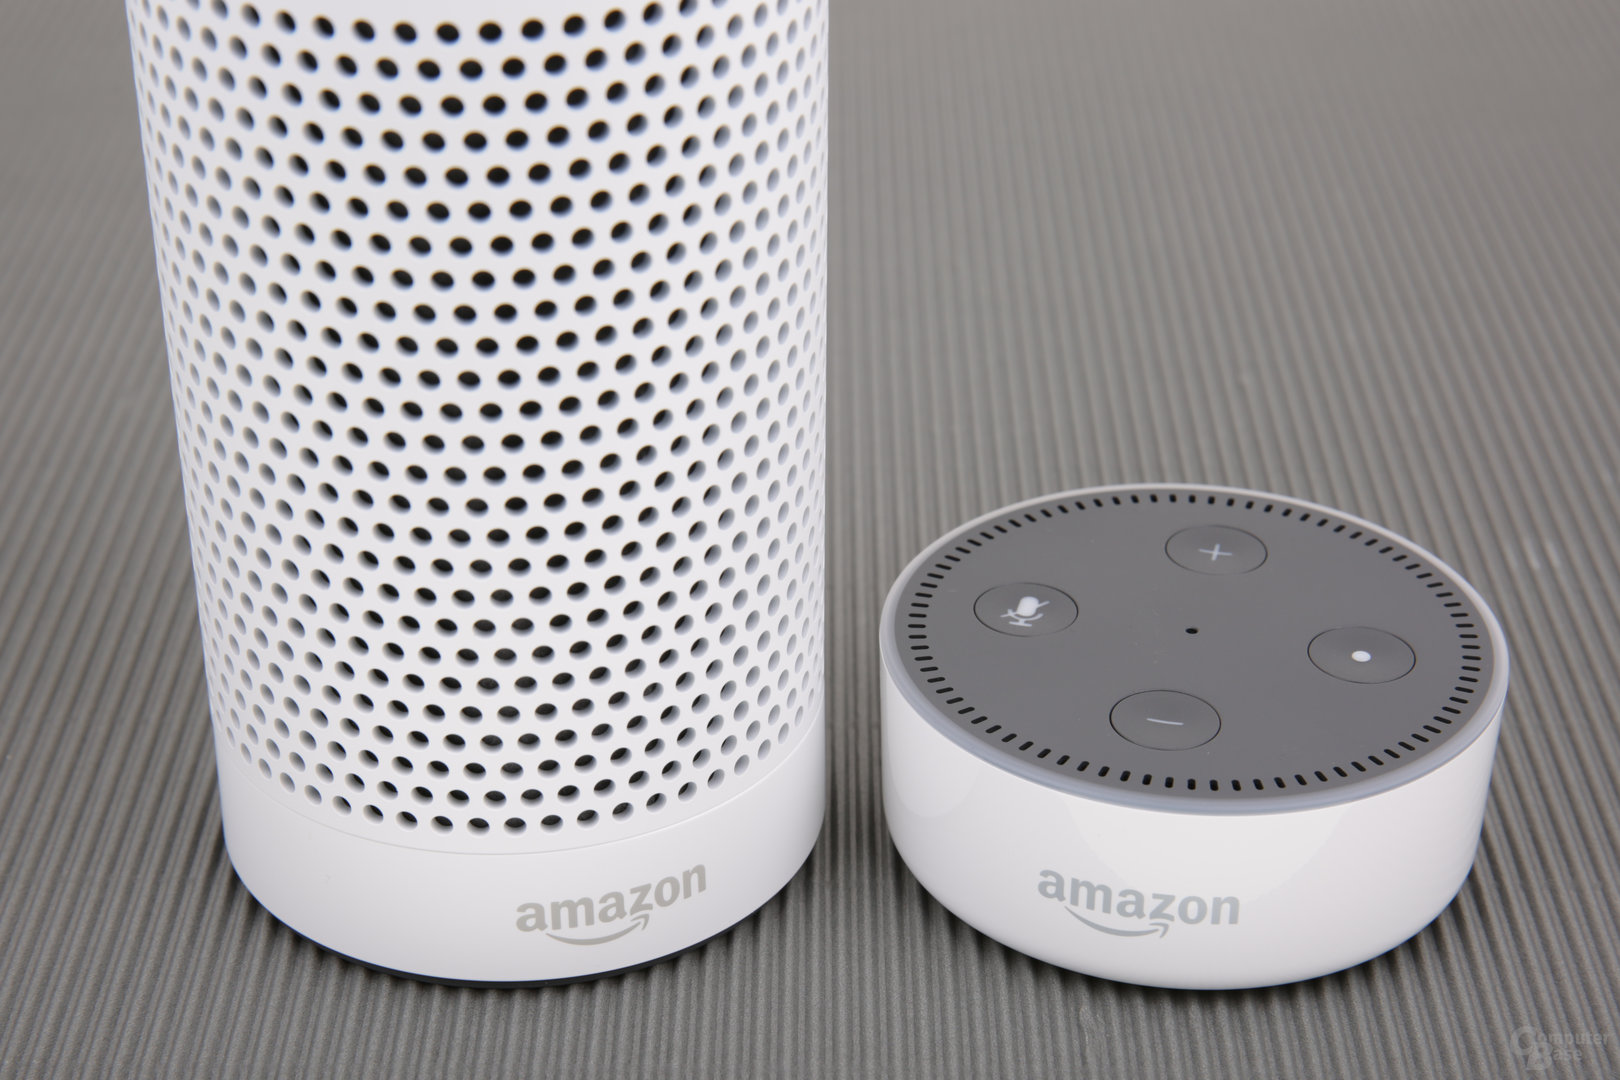 Amazon Echo und Echo Dot